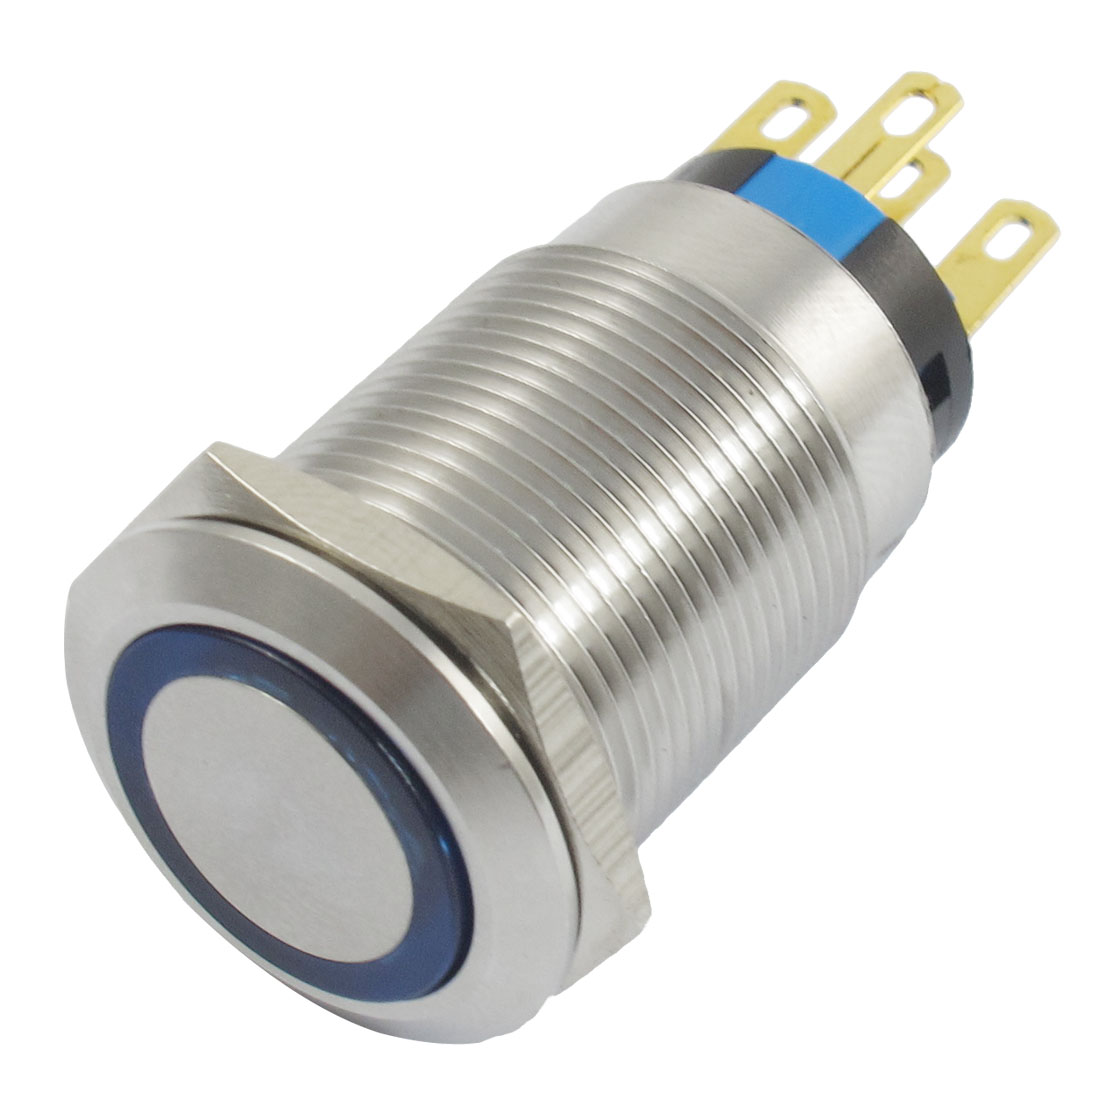 24V Blue Lamp Self-locking SPDT Contact Stainless Push Button Switch